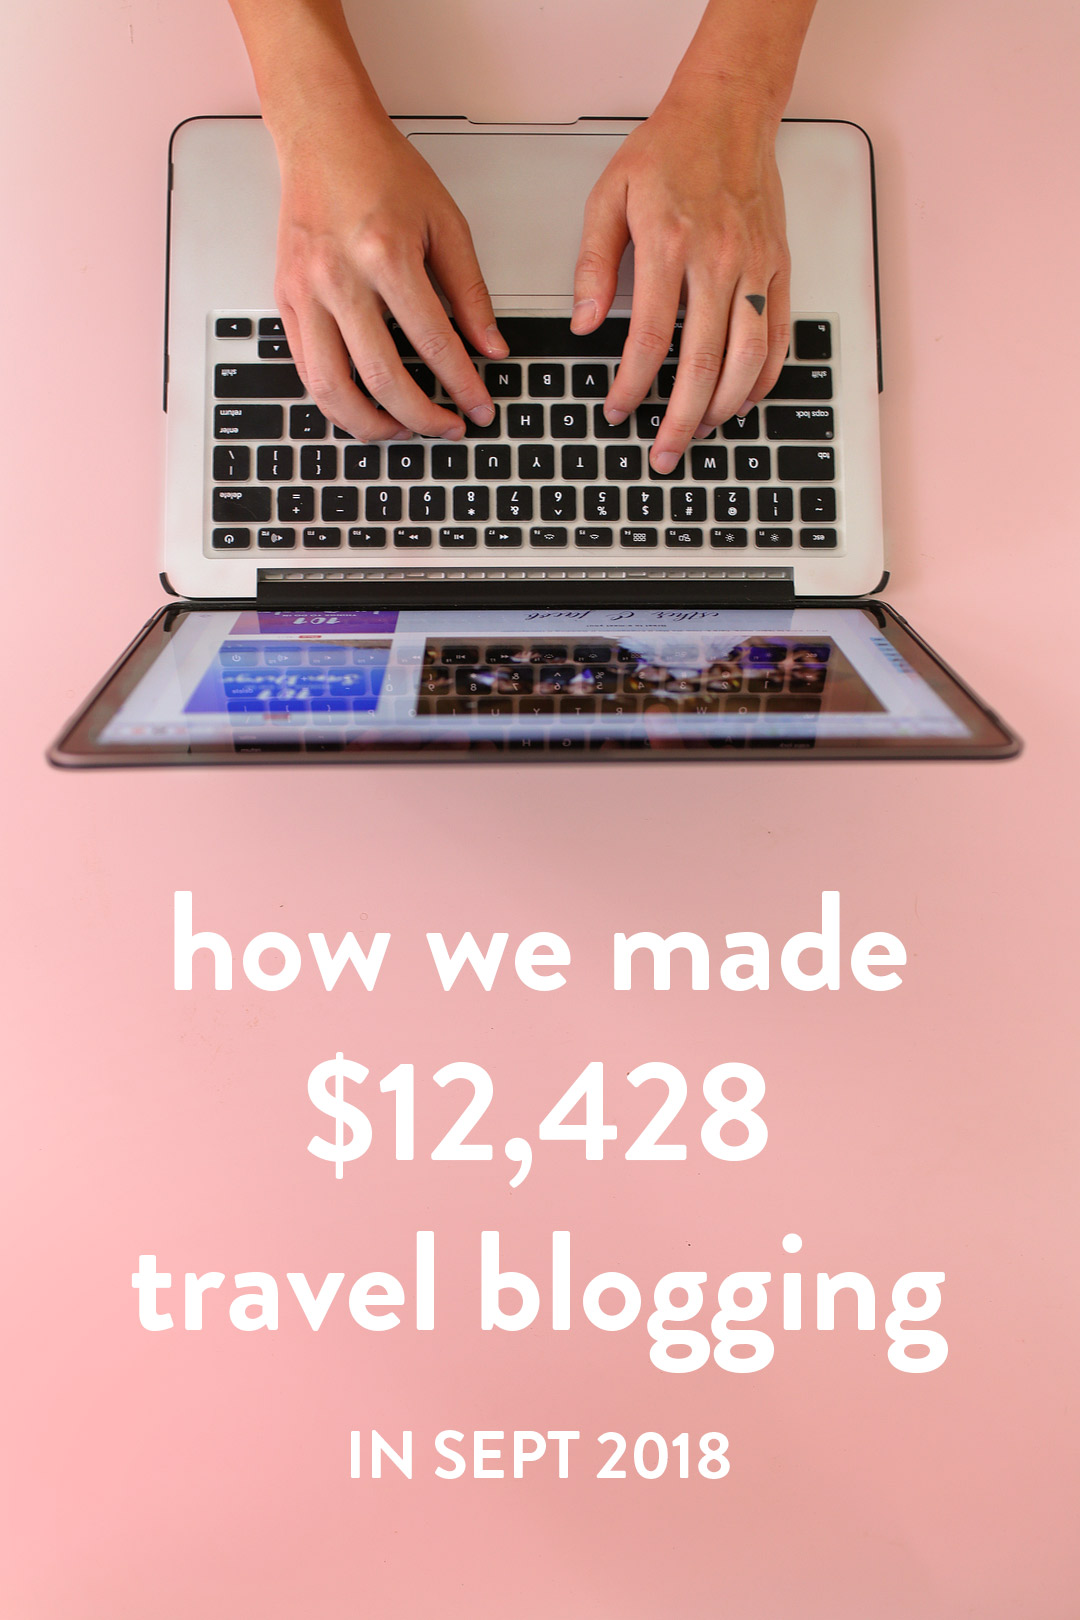 How We Made 12K+ in One Month - Our Blog Income Reports // Local Adventurer #localadventurer #travelblogger #blogincome #blogger #travelblog #blog #problogger